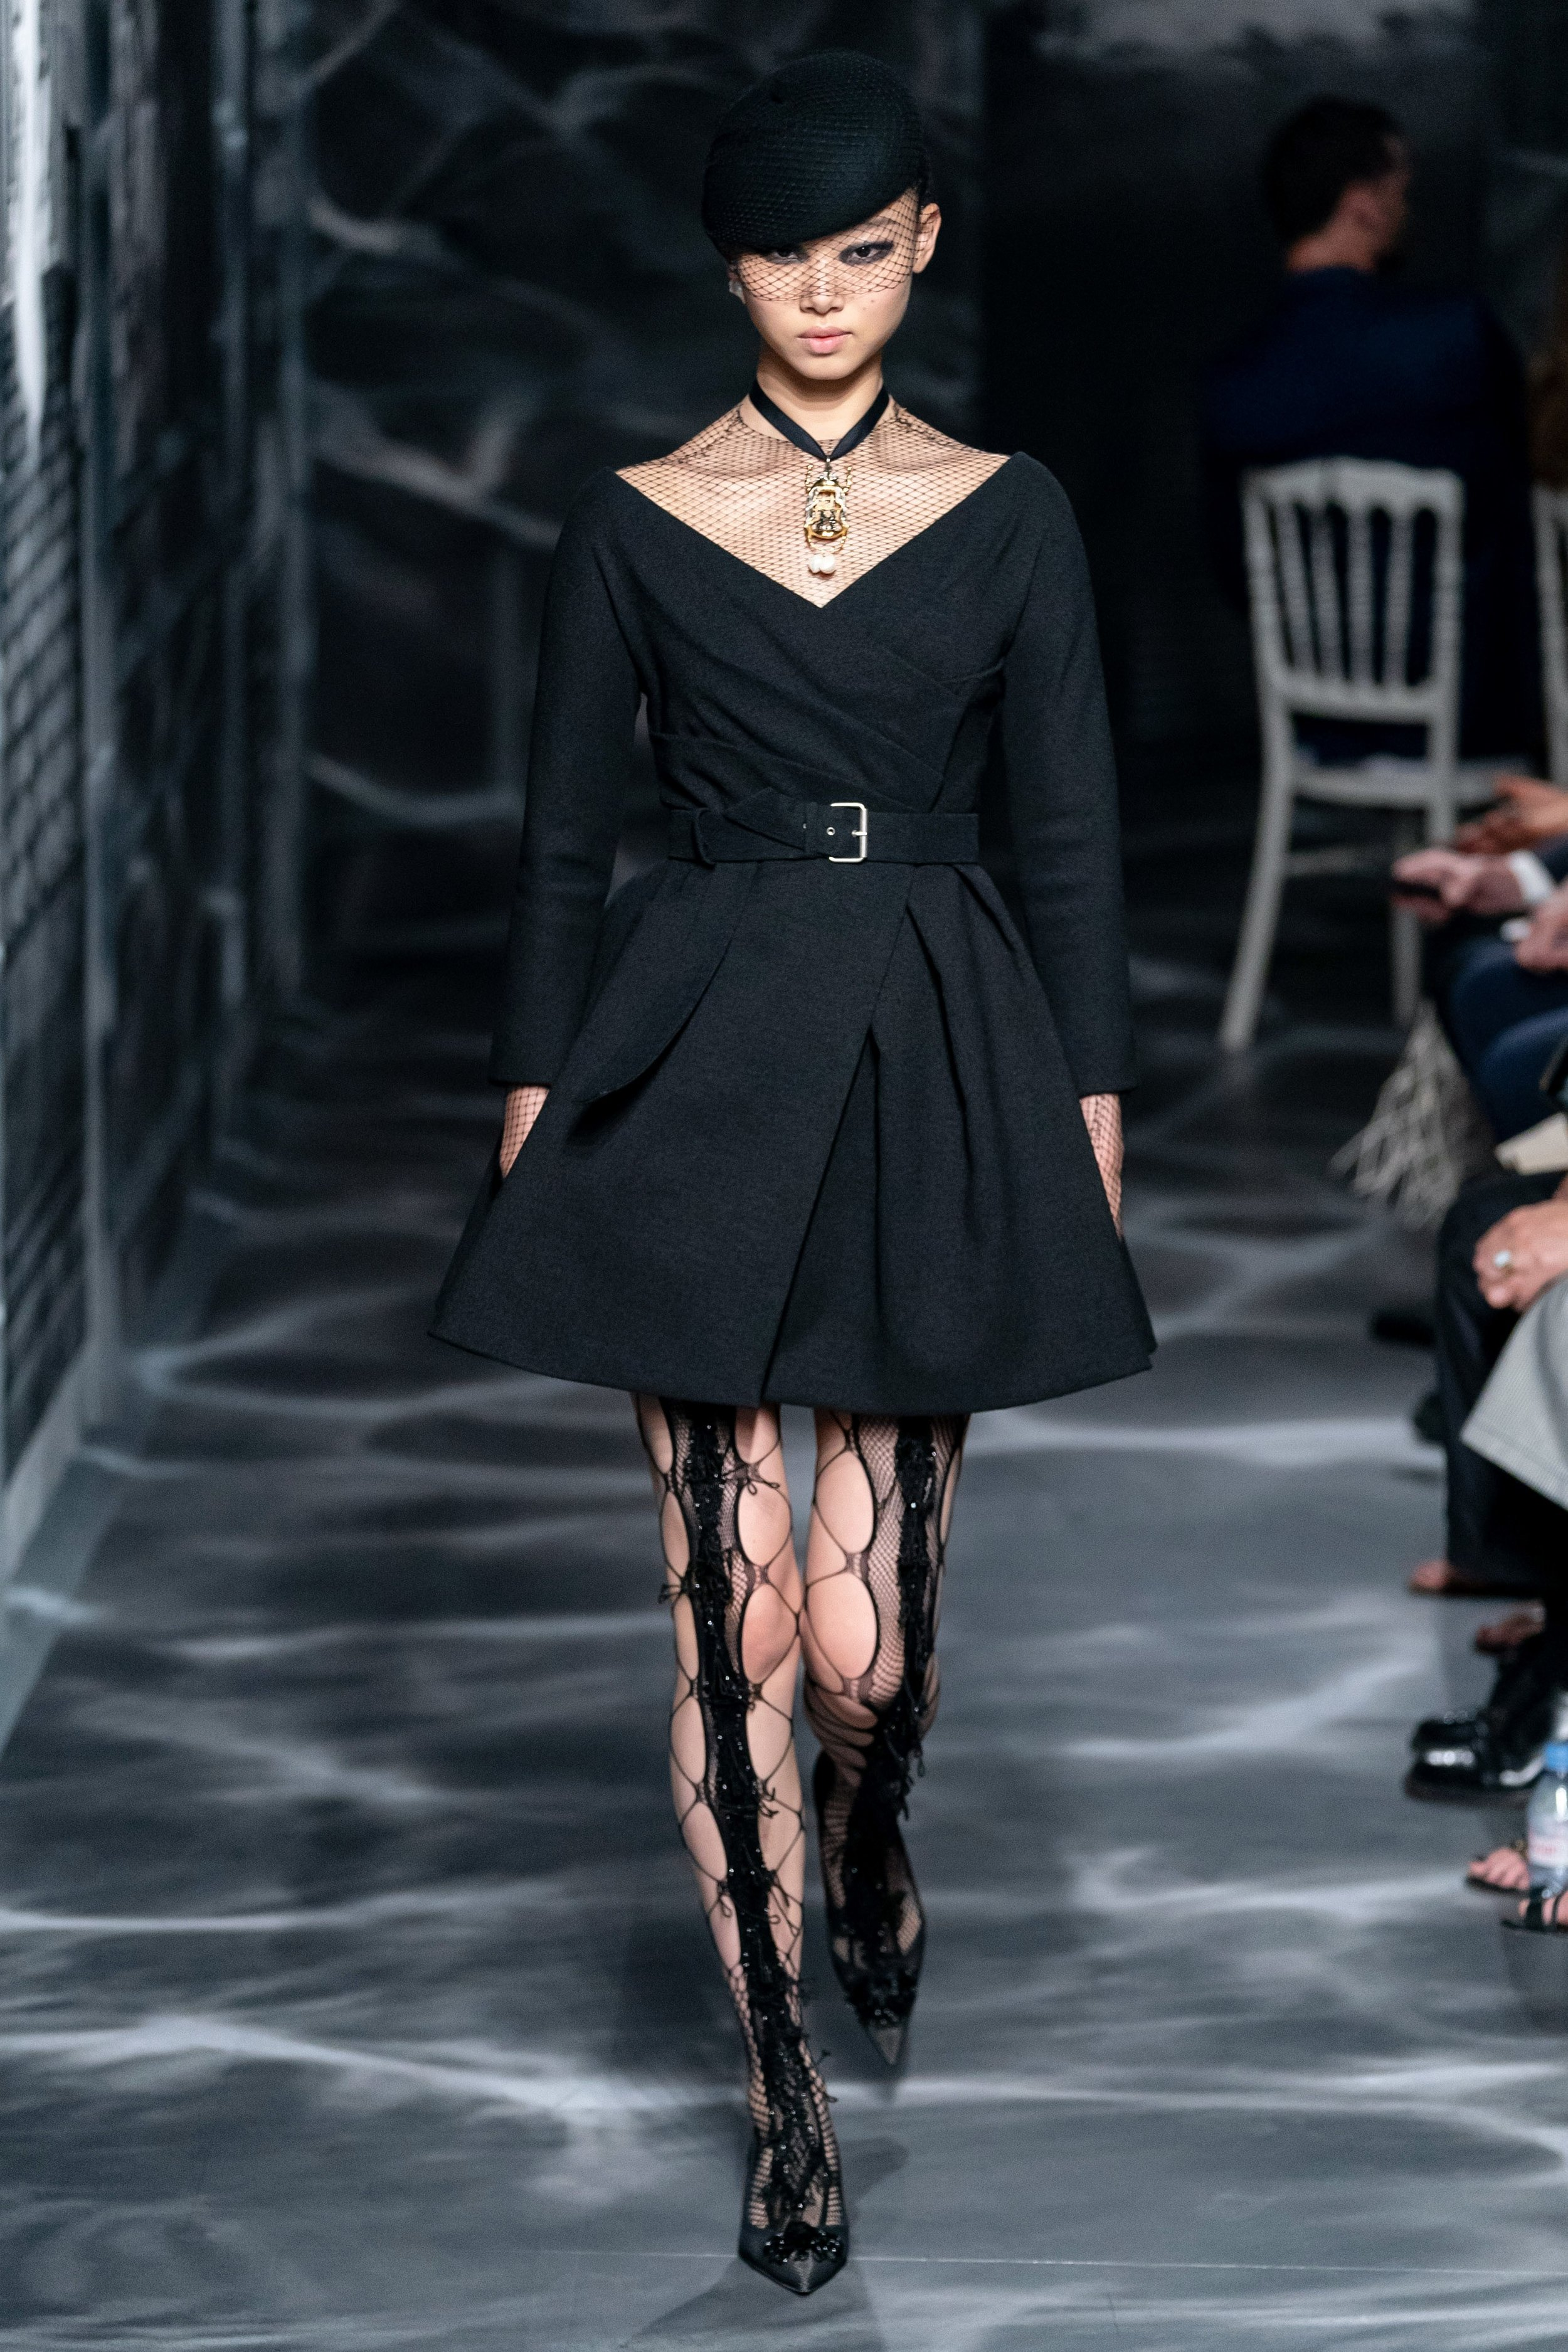 3/4 Christian Dior Fall Couture 19: Favorite Looks